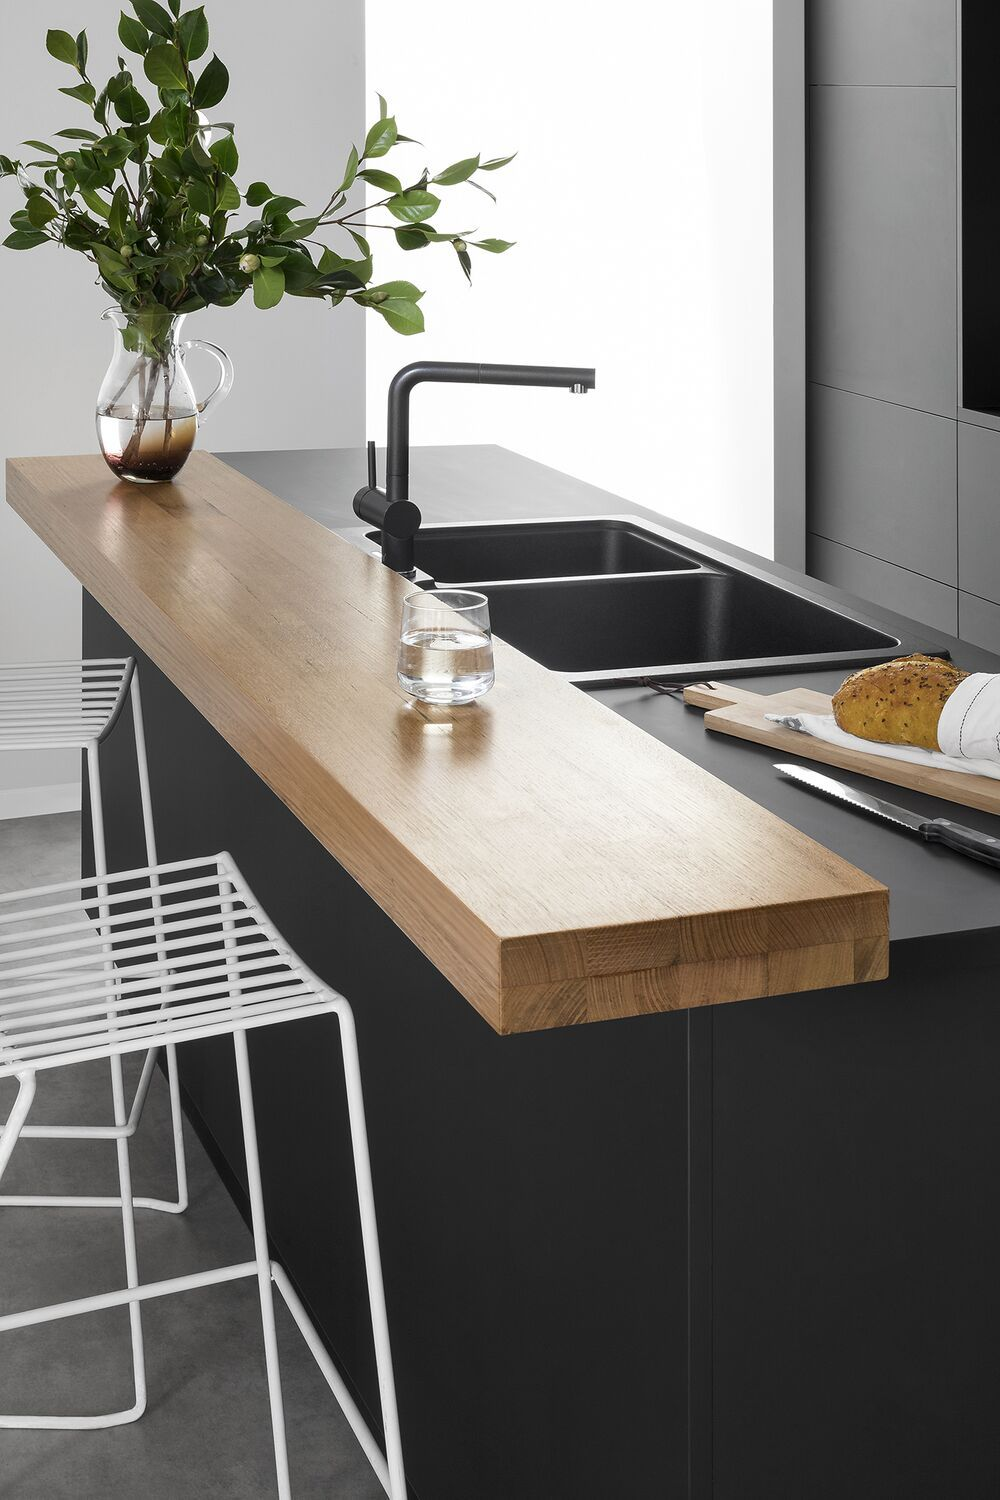 can you hack it how cool is this timber benchtop extension in 2020 kitchen inspirations on kaboodle kitchen design id=42126